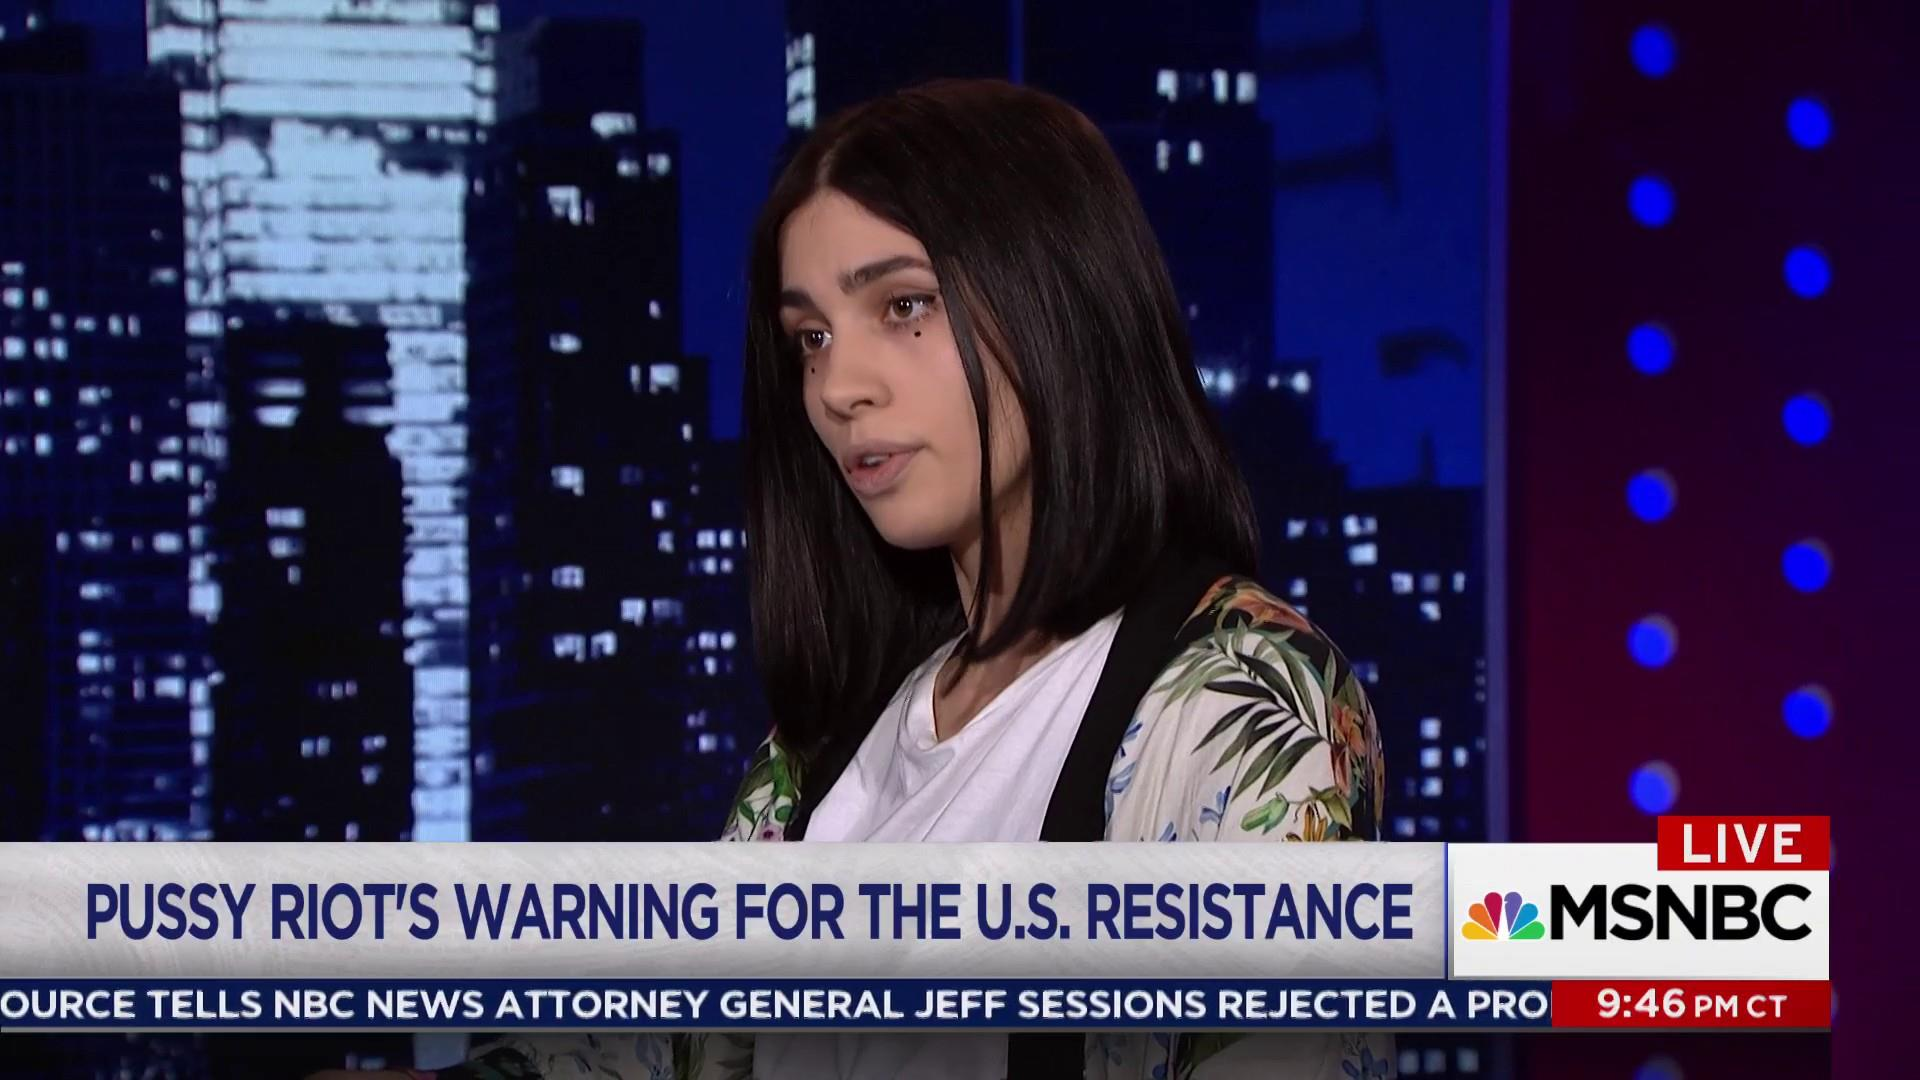 Pussy Riot's warning about Trump for the U...